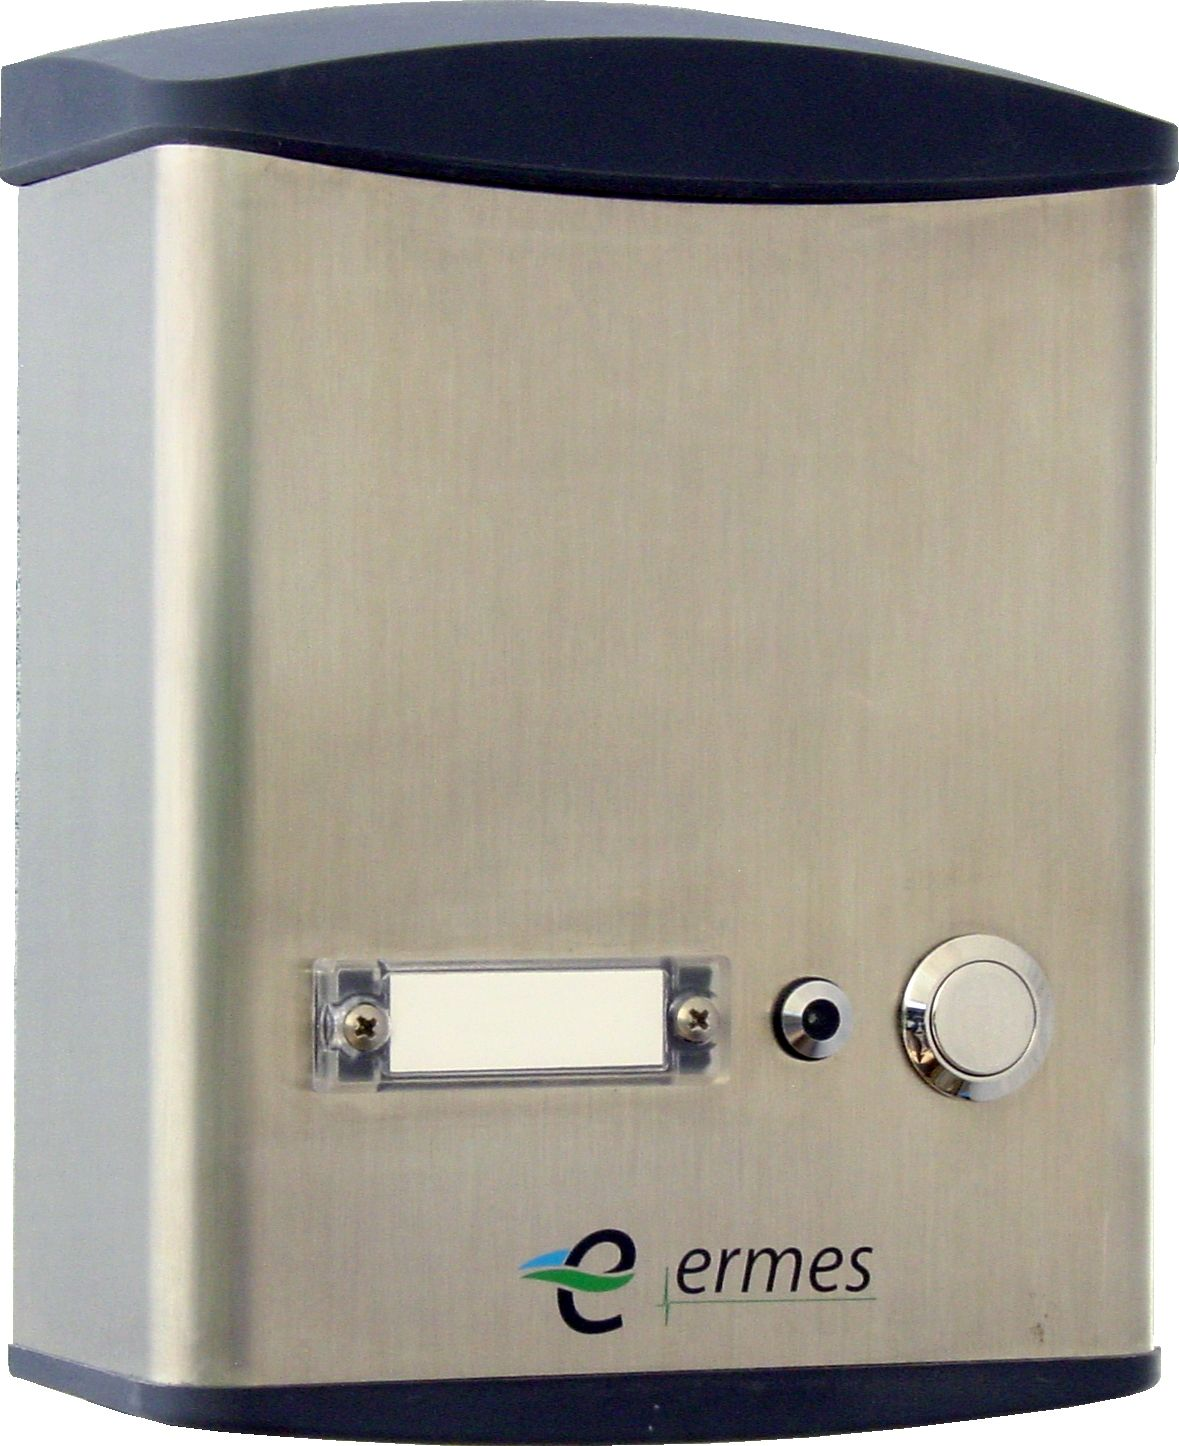 ermes-interlan-e.1p-intercom-over-ip-256-p